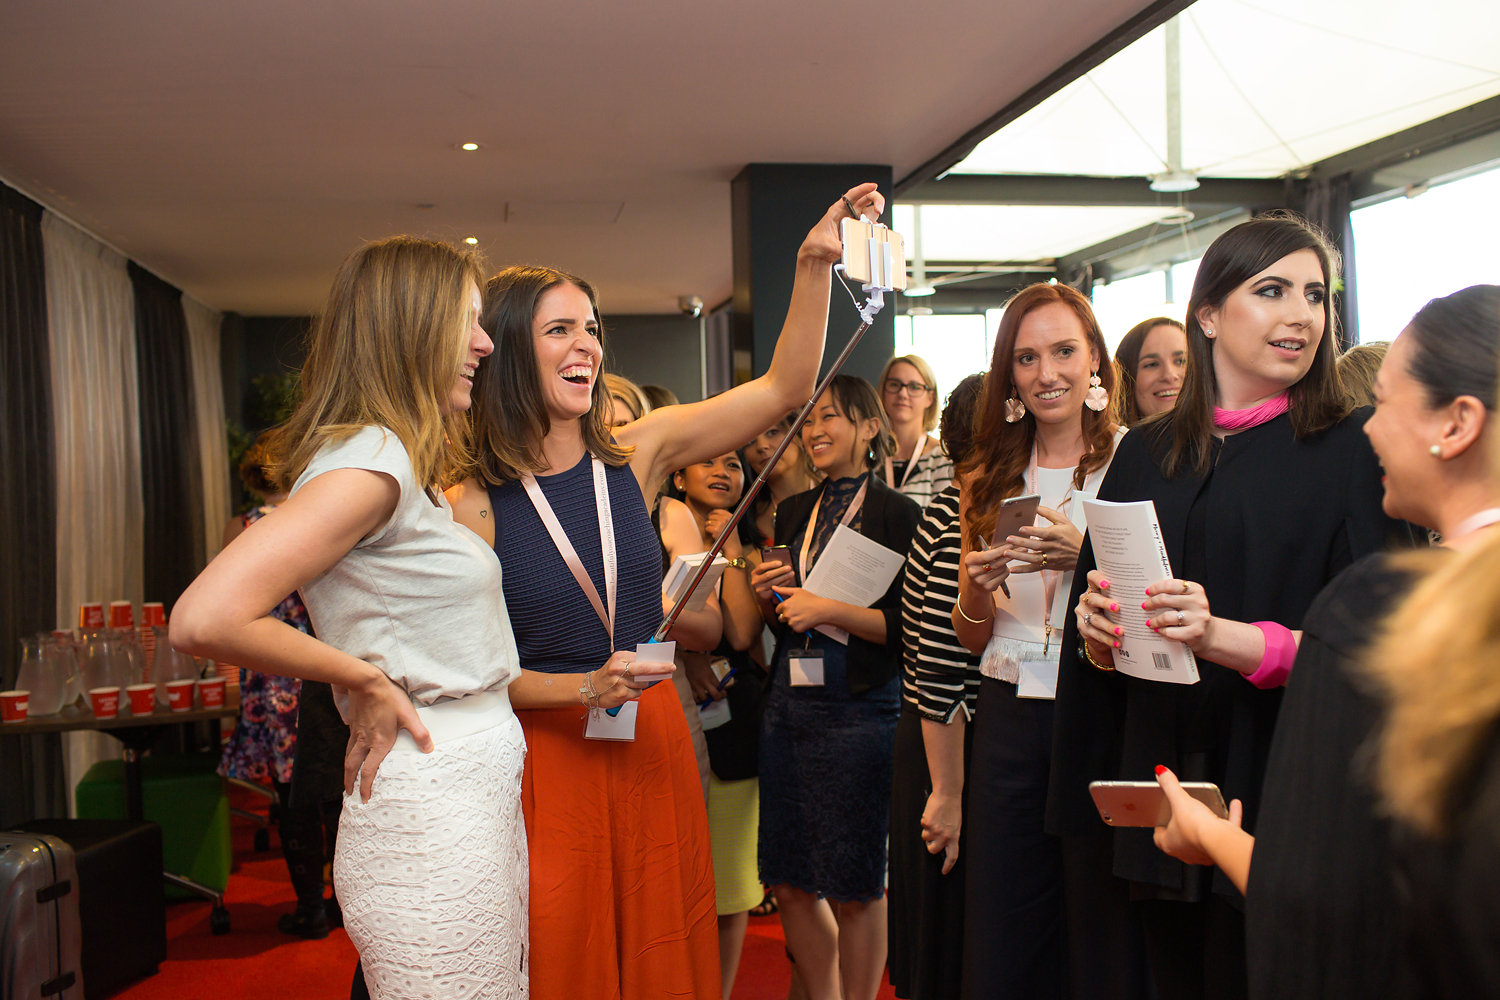 TAKING A SELFIE WITH LISA MESSENGER AT THE MELBOURNE INSPIRATION DAY NOVEMBER 2015